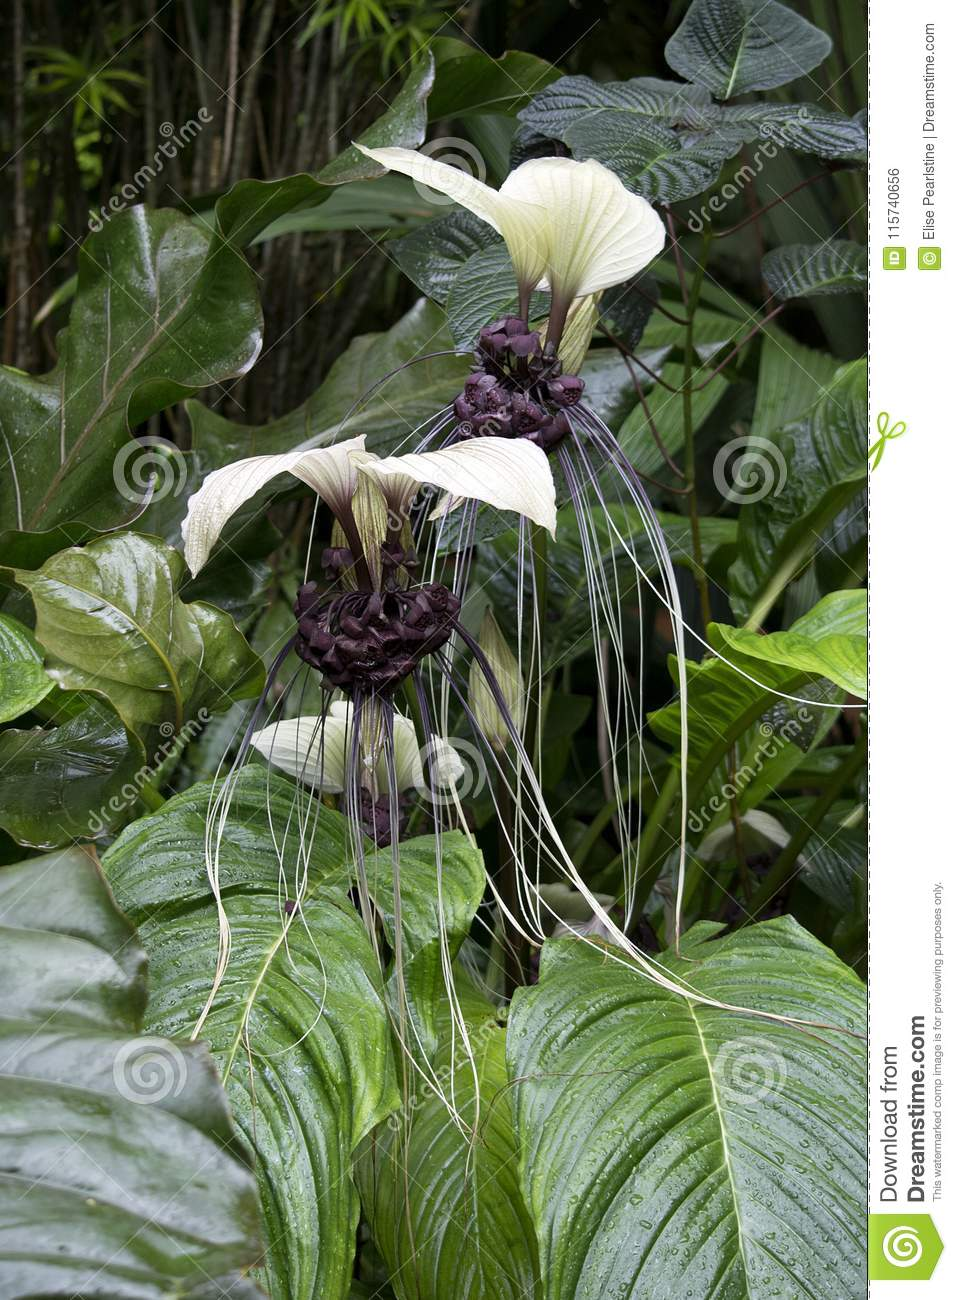 Rare White Bat Flower Tacca Chantrieri Tropical Plant With Black